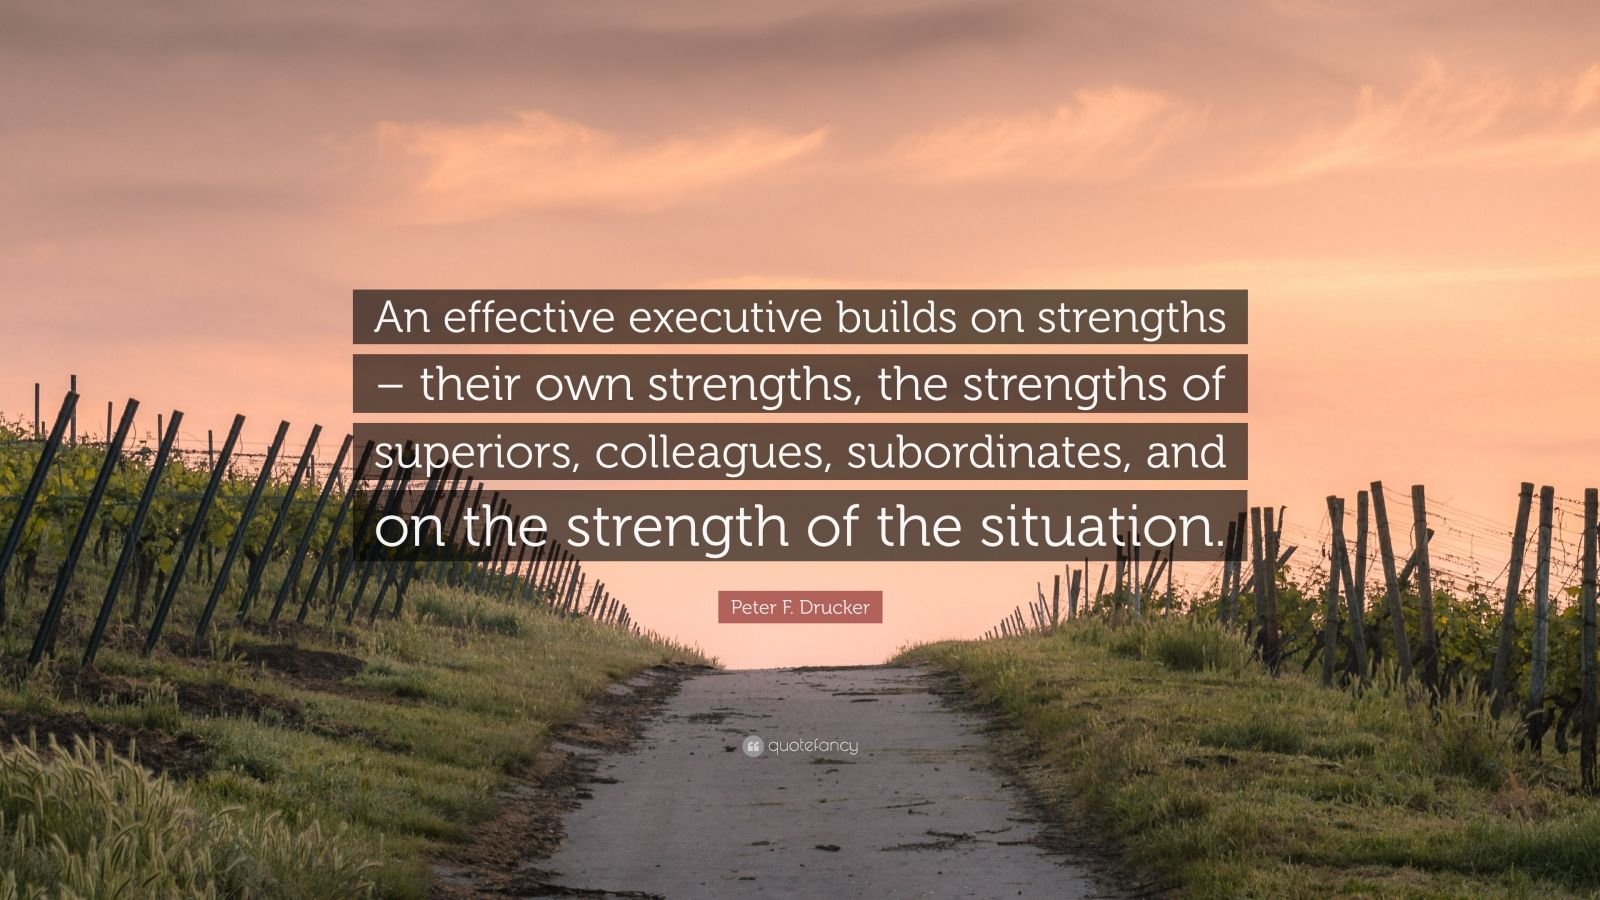 """Peter F. Drucker Quote: """"An effective executive builds on strengths – their own strengths, the strengths of superiors, colleagues, subordinates, and on the strength of the situation."""""""